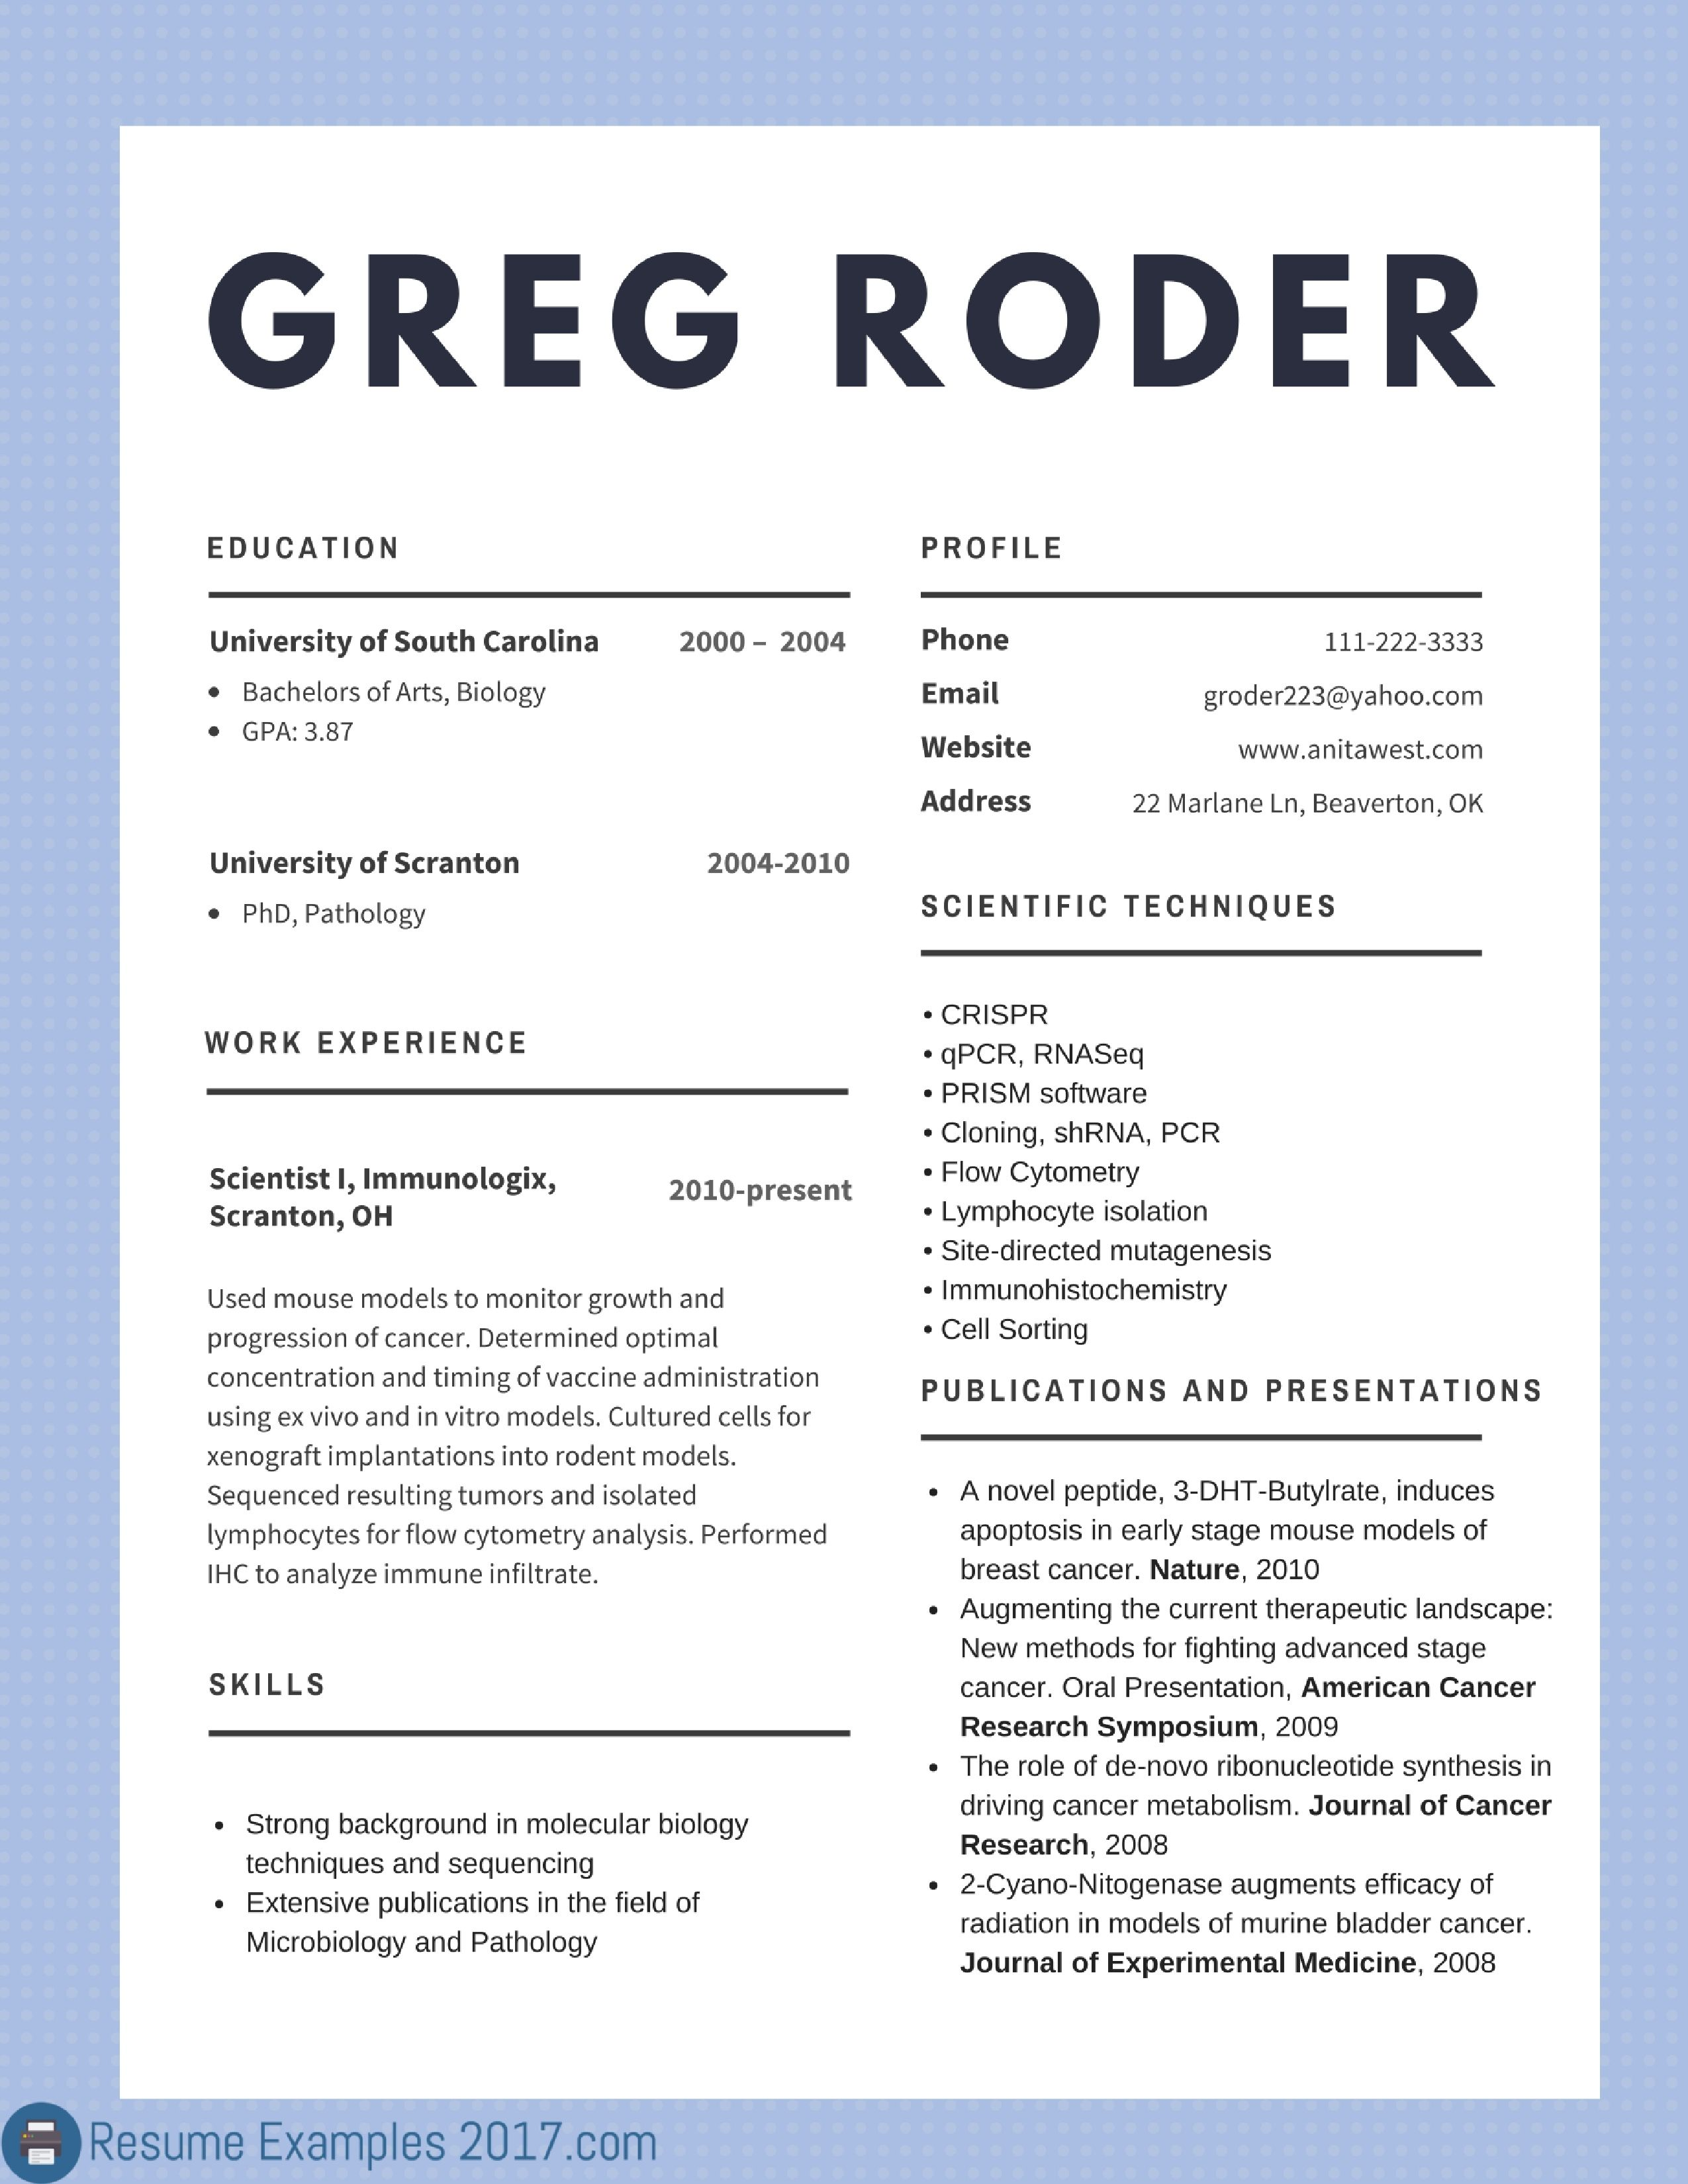 2017 for jobs | resume examples | pinterest | resume examples